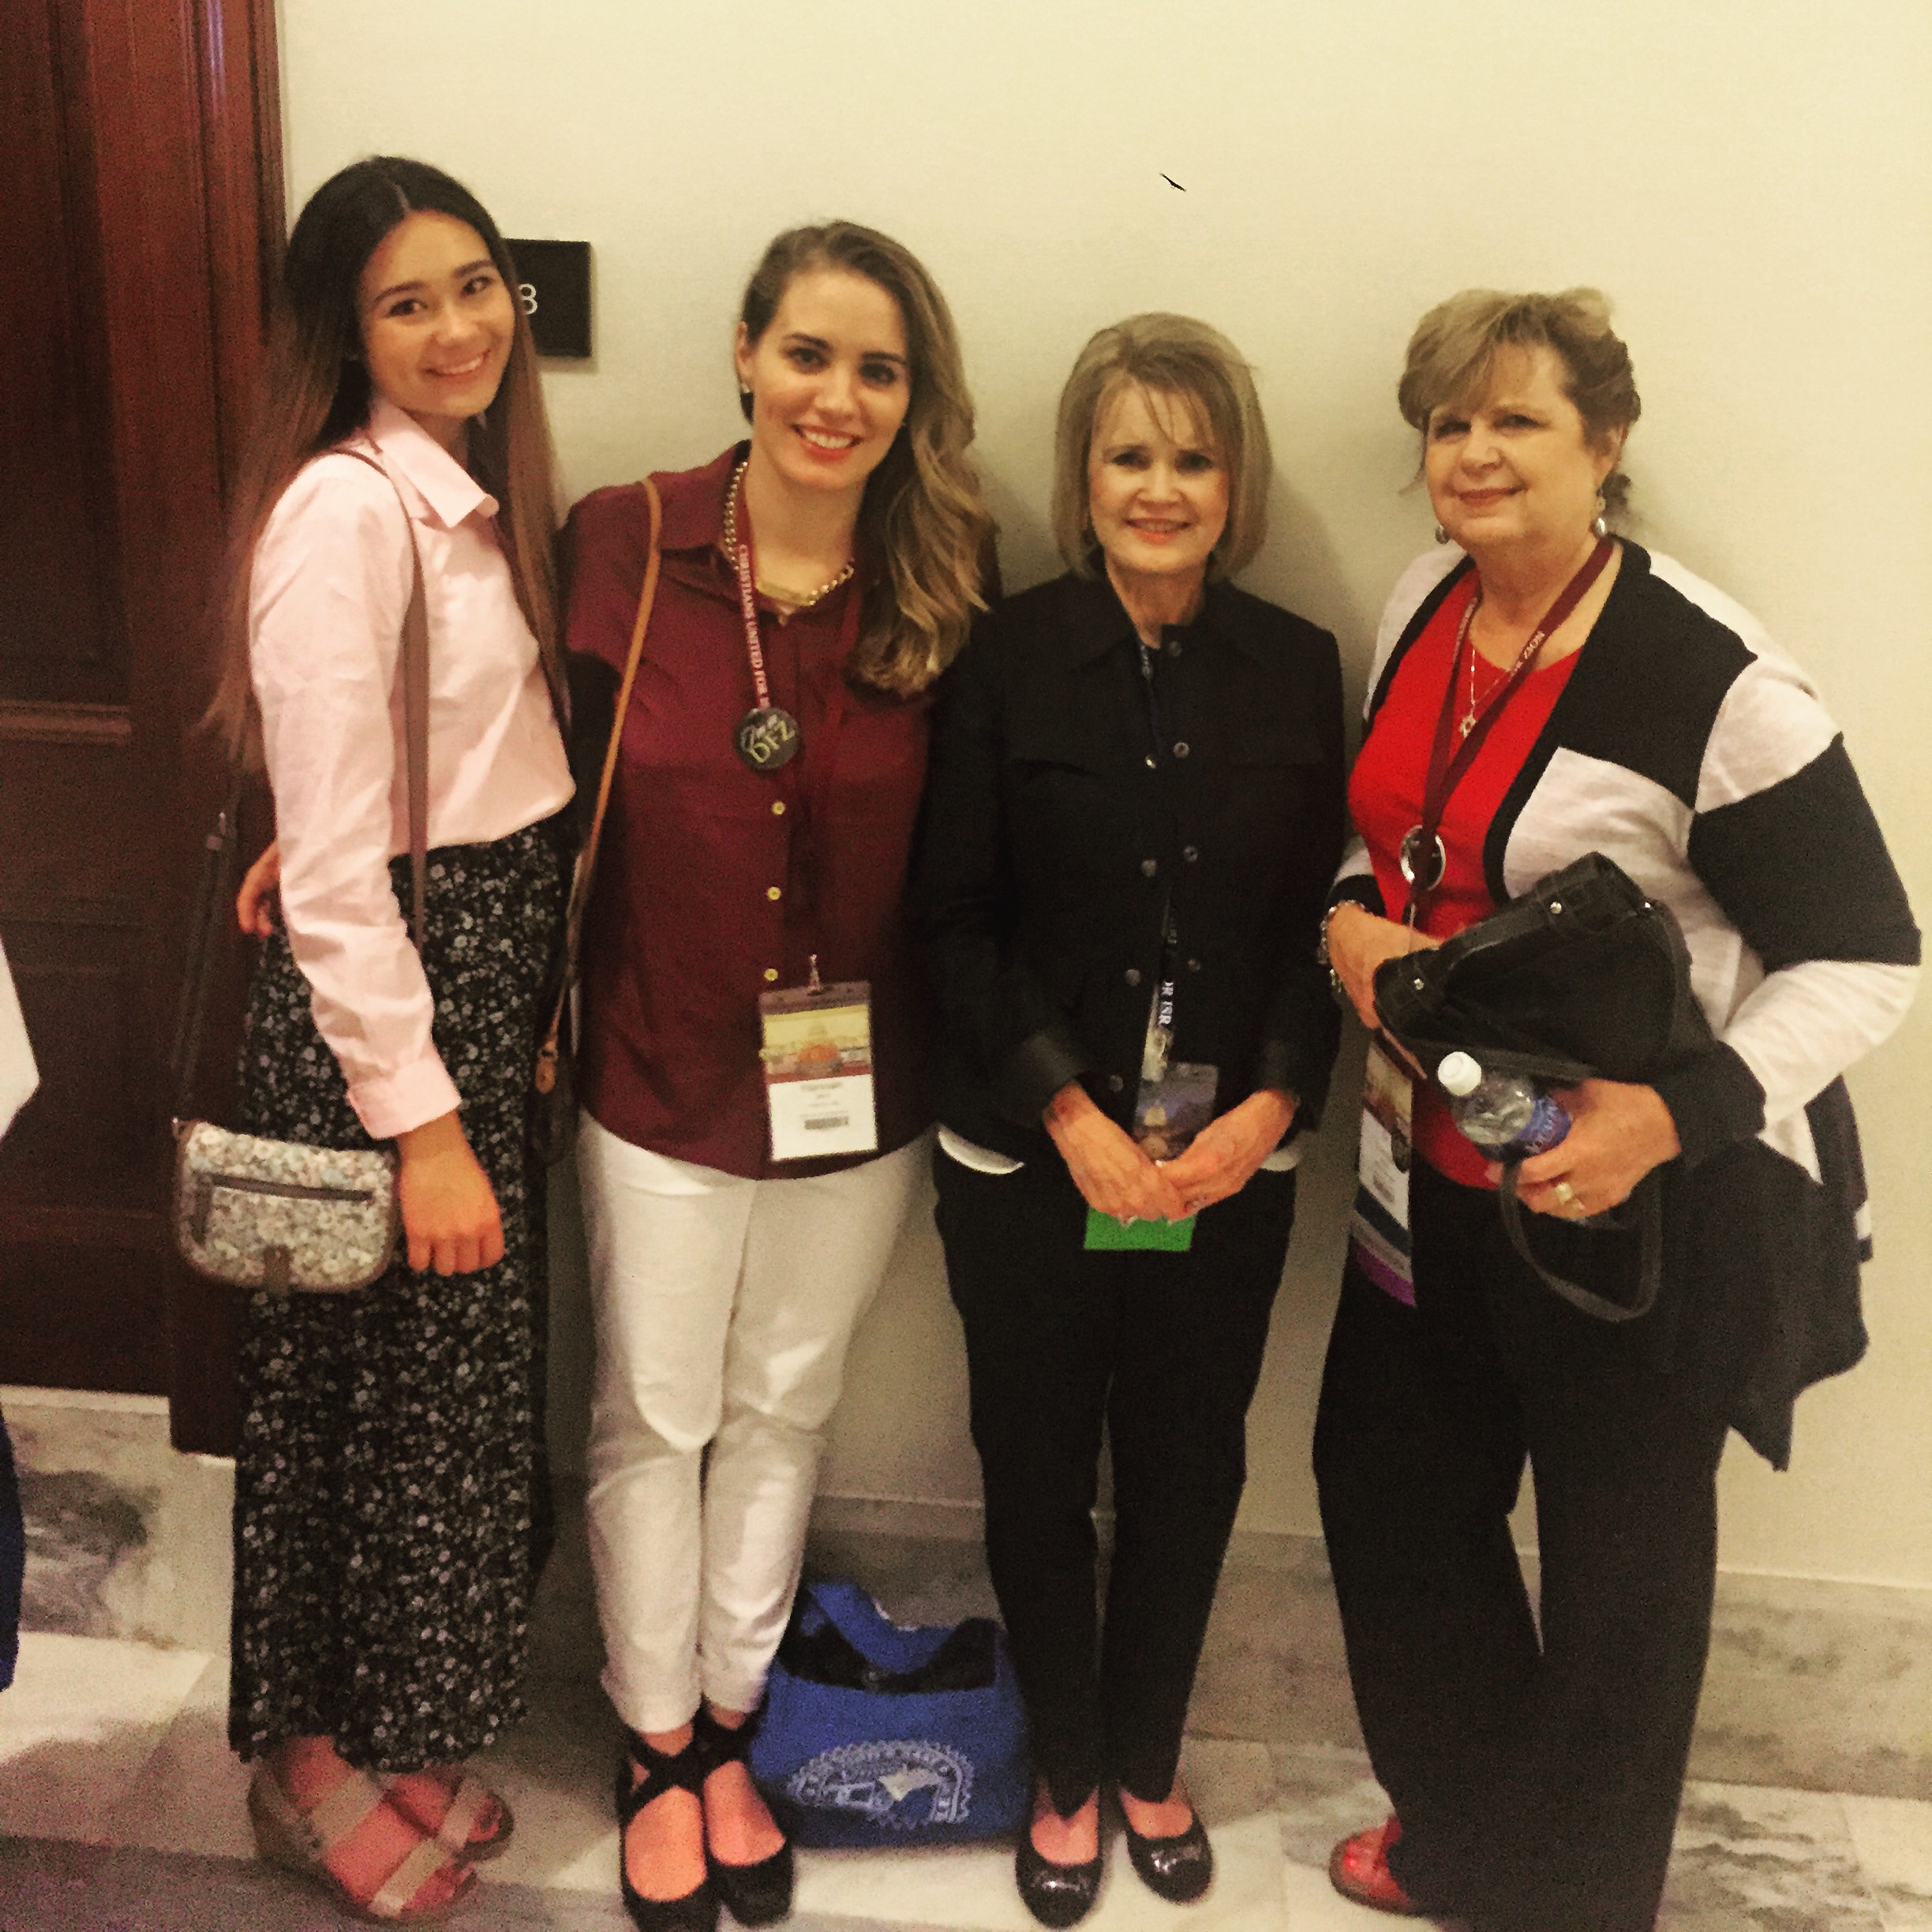 Cassidy Ollison, Me, Pastor Vicki Leuther, and Pastor Loretta Ollison on Capitol Hill Tuesday